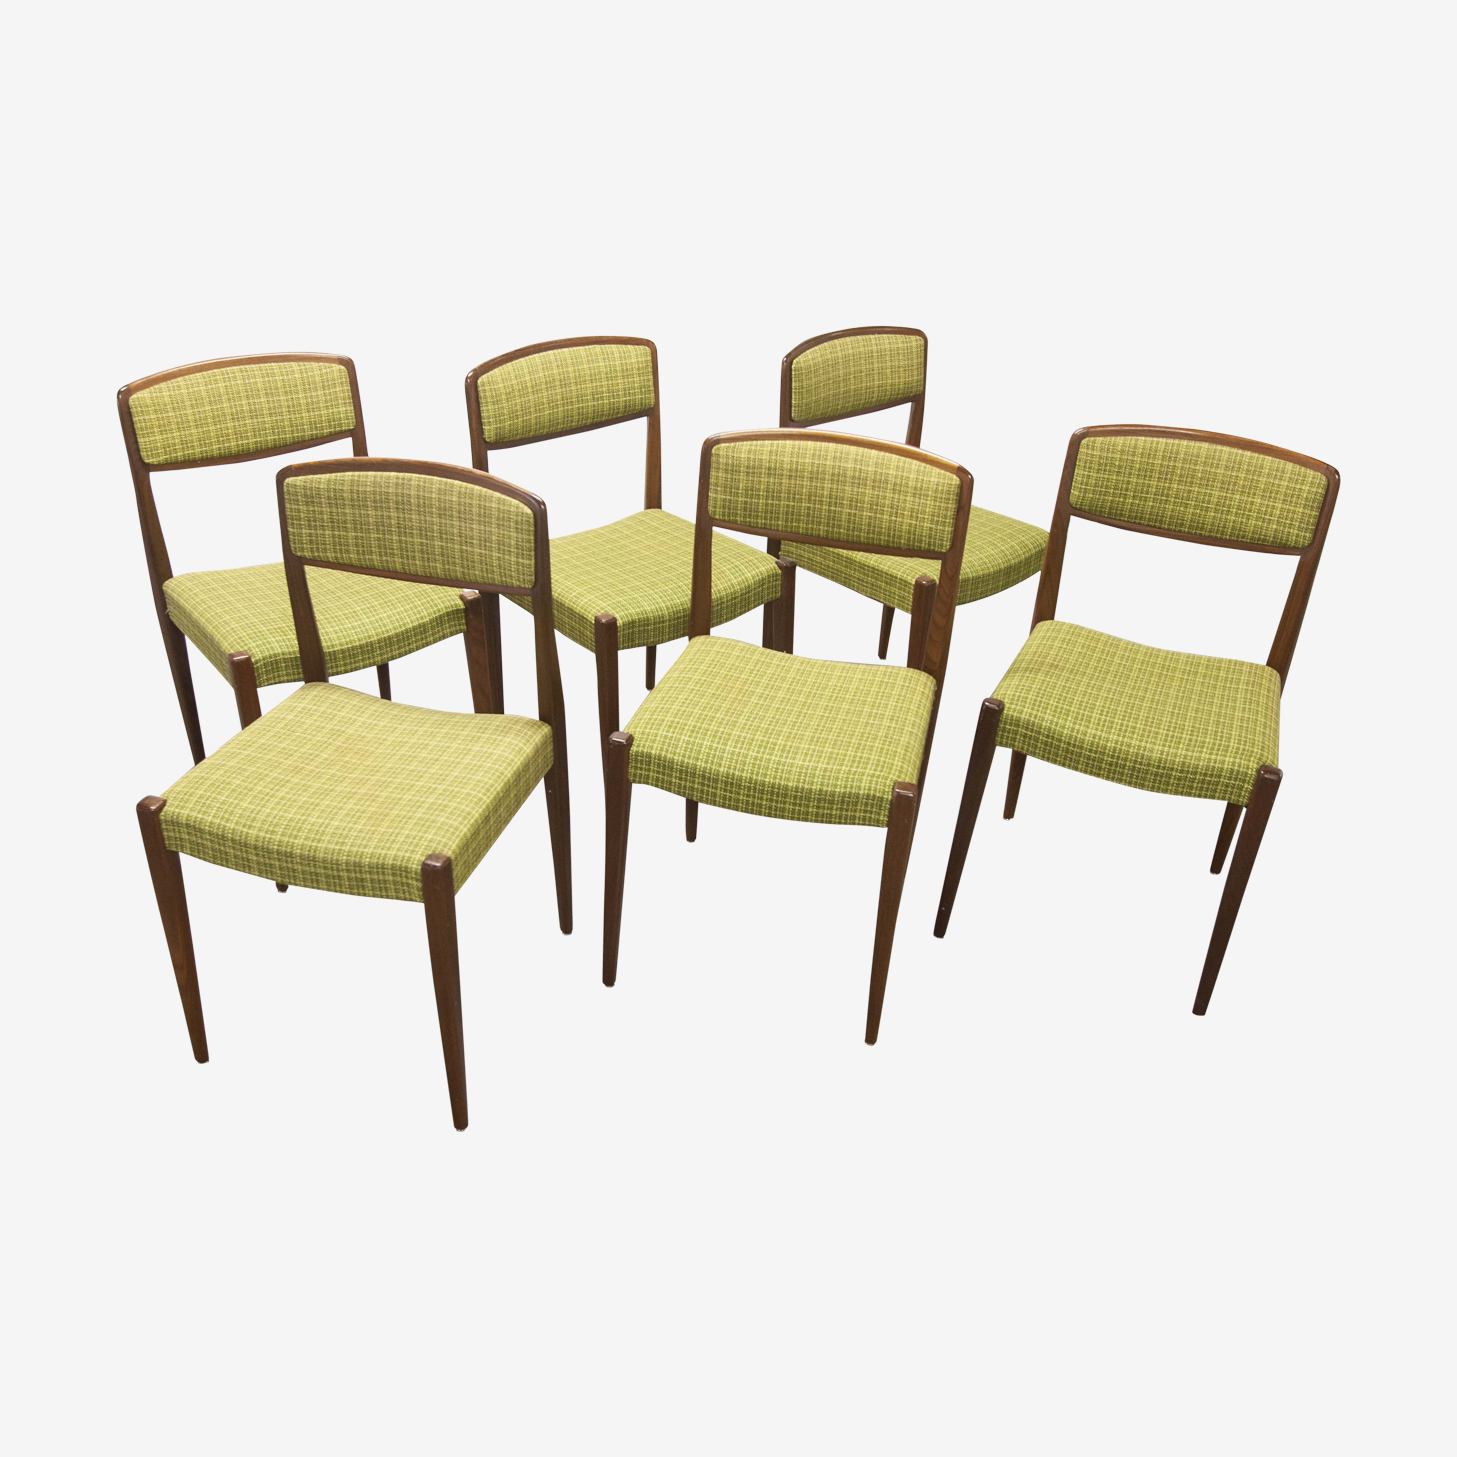 Set of 6 teak chairs fabrics back and seat signed SS